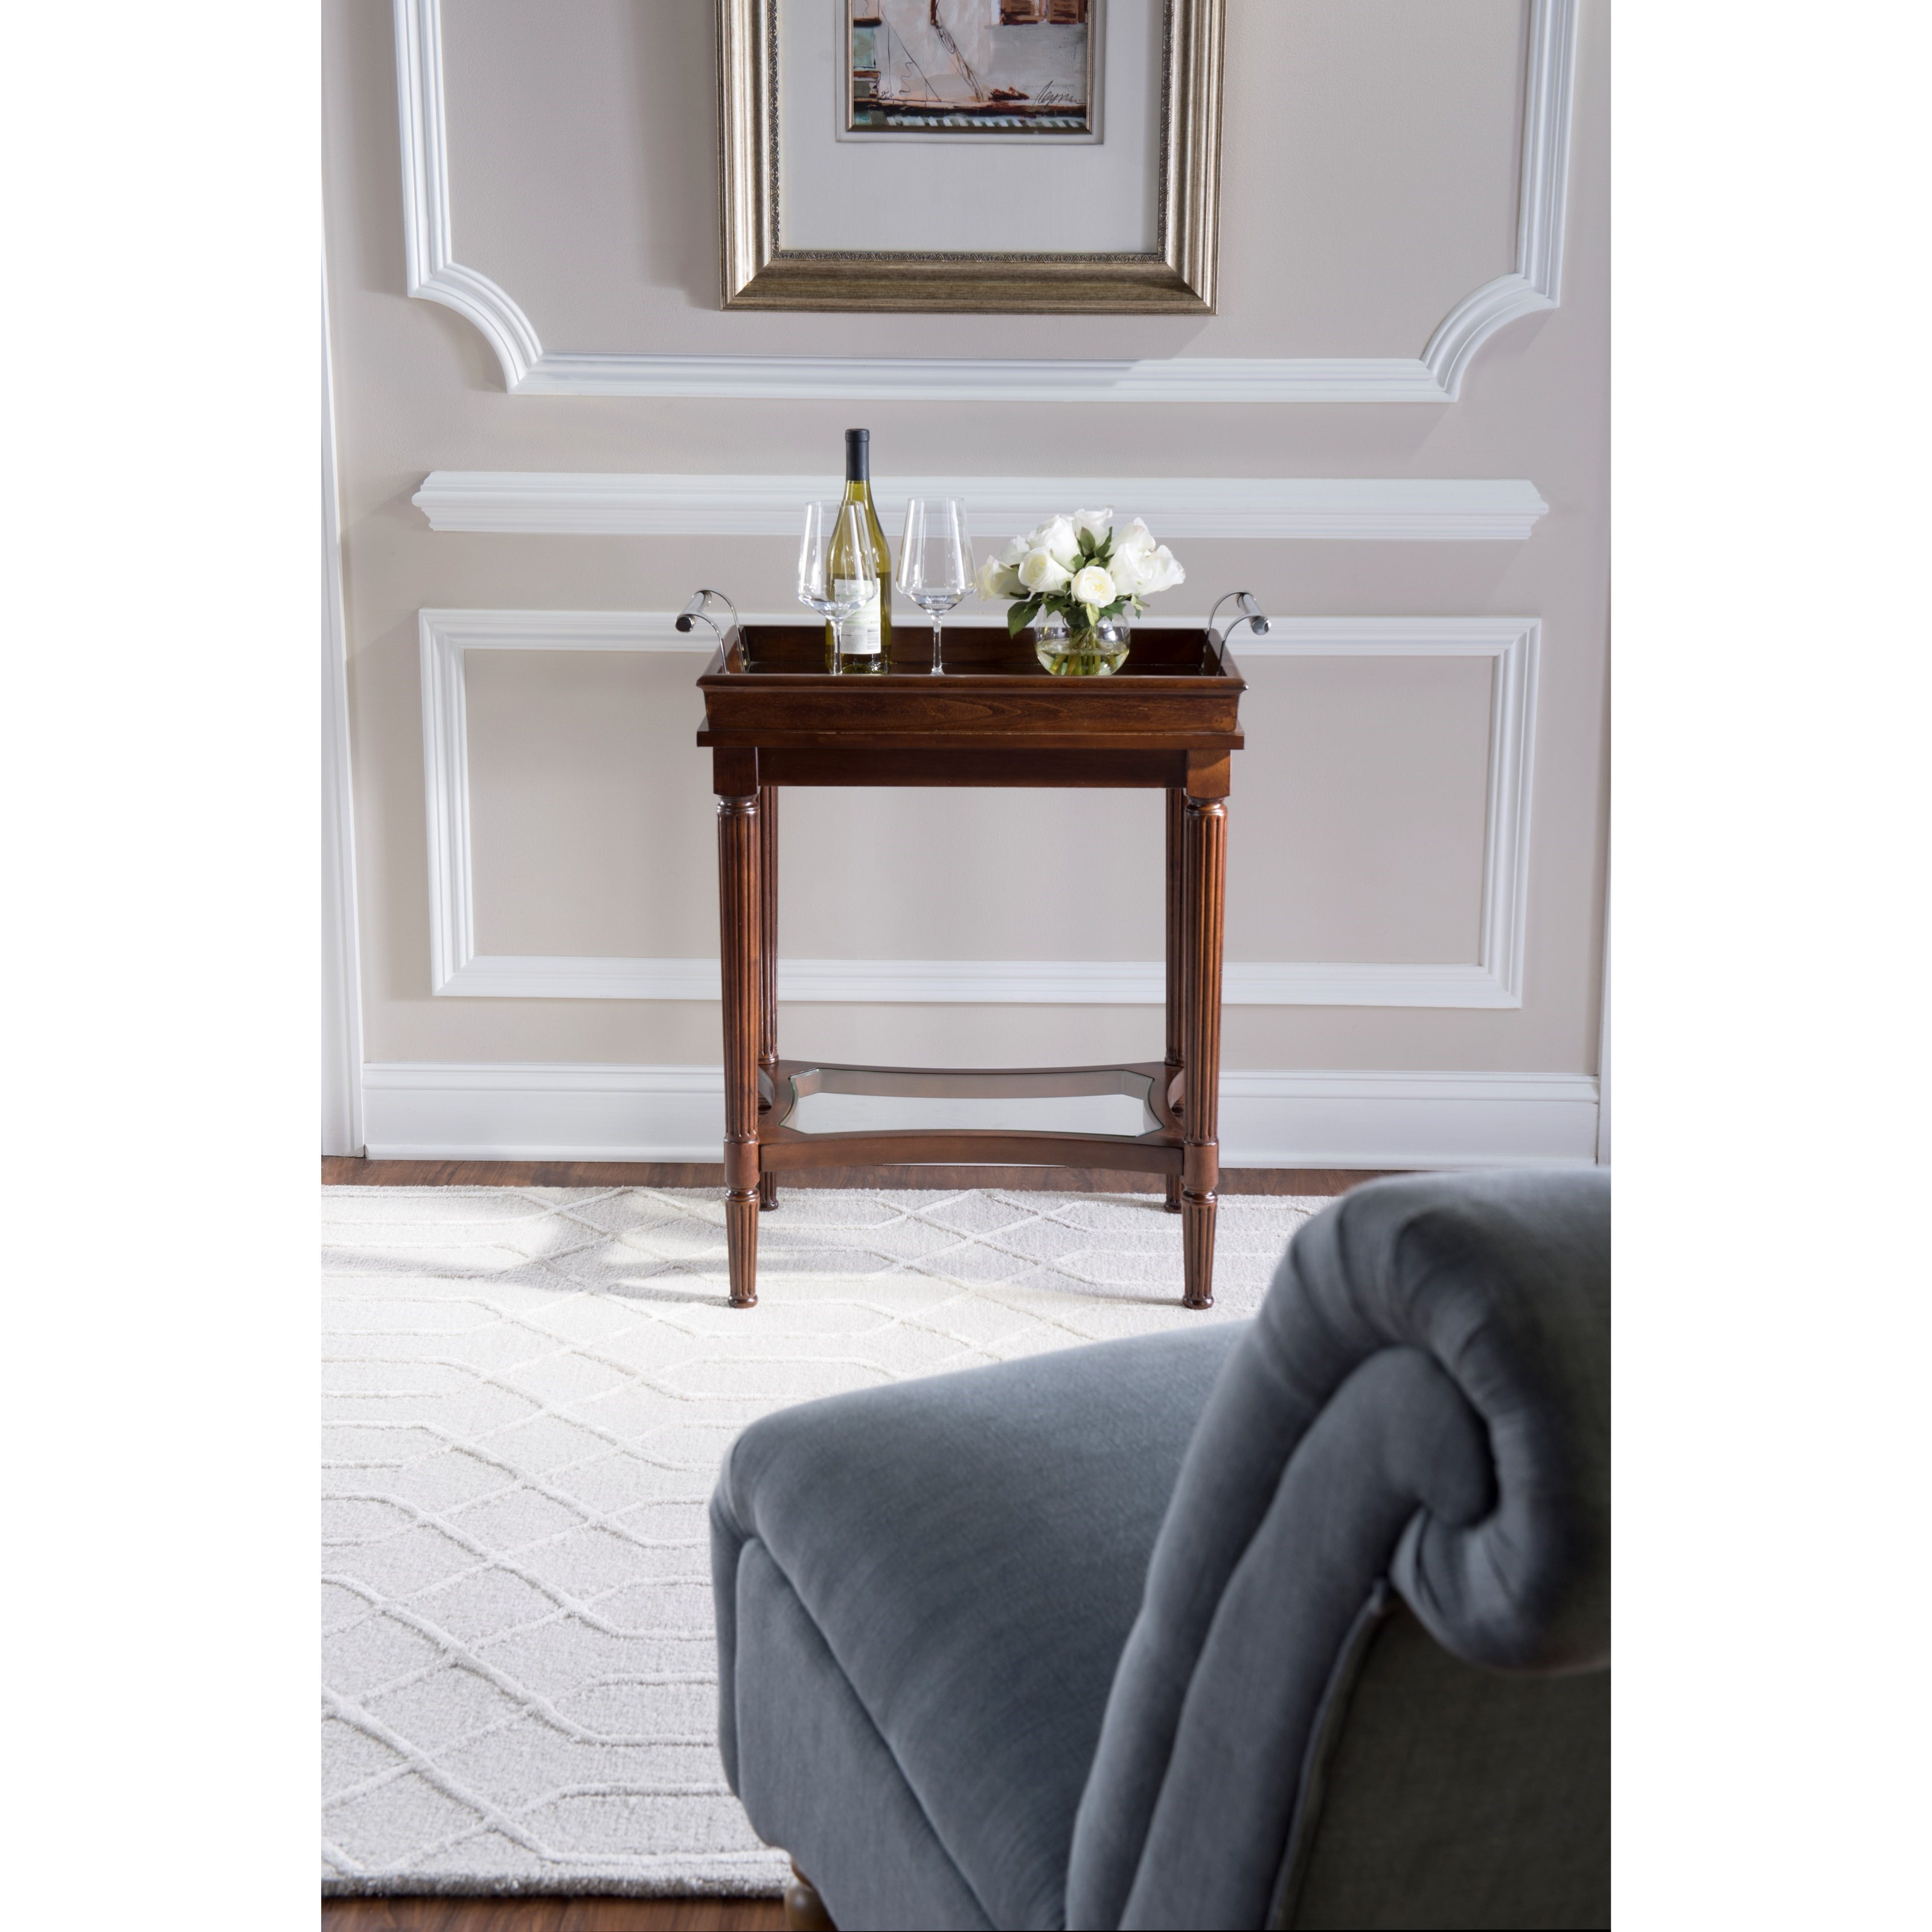 Accent Furniture Masterpiece Mia Serving Tray Table by Powell at Lynn's Furniture & Mattress